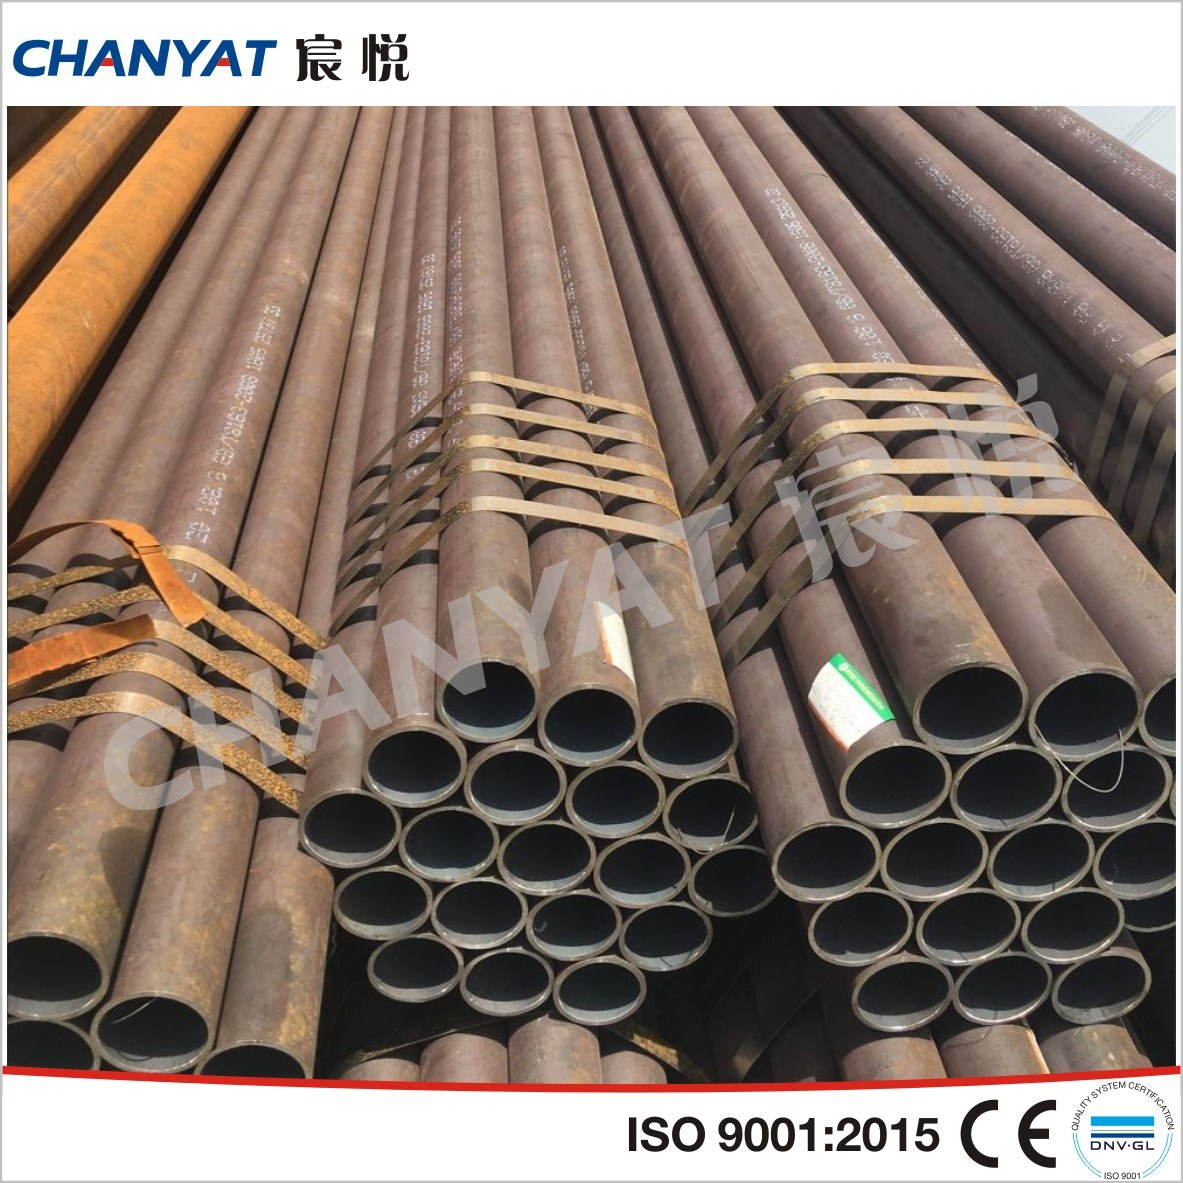 Seamless Carbon Steel Pipe and Tube (ASTM A106, A334, A192, A210)